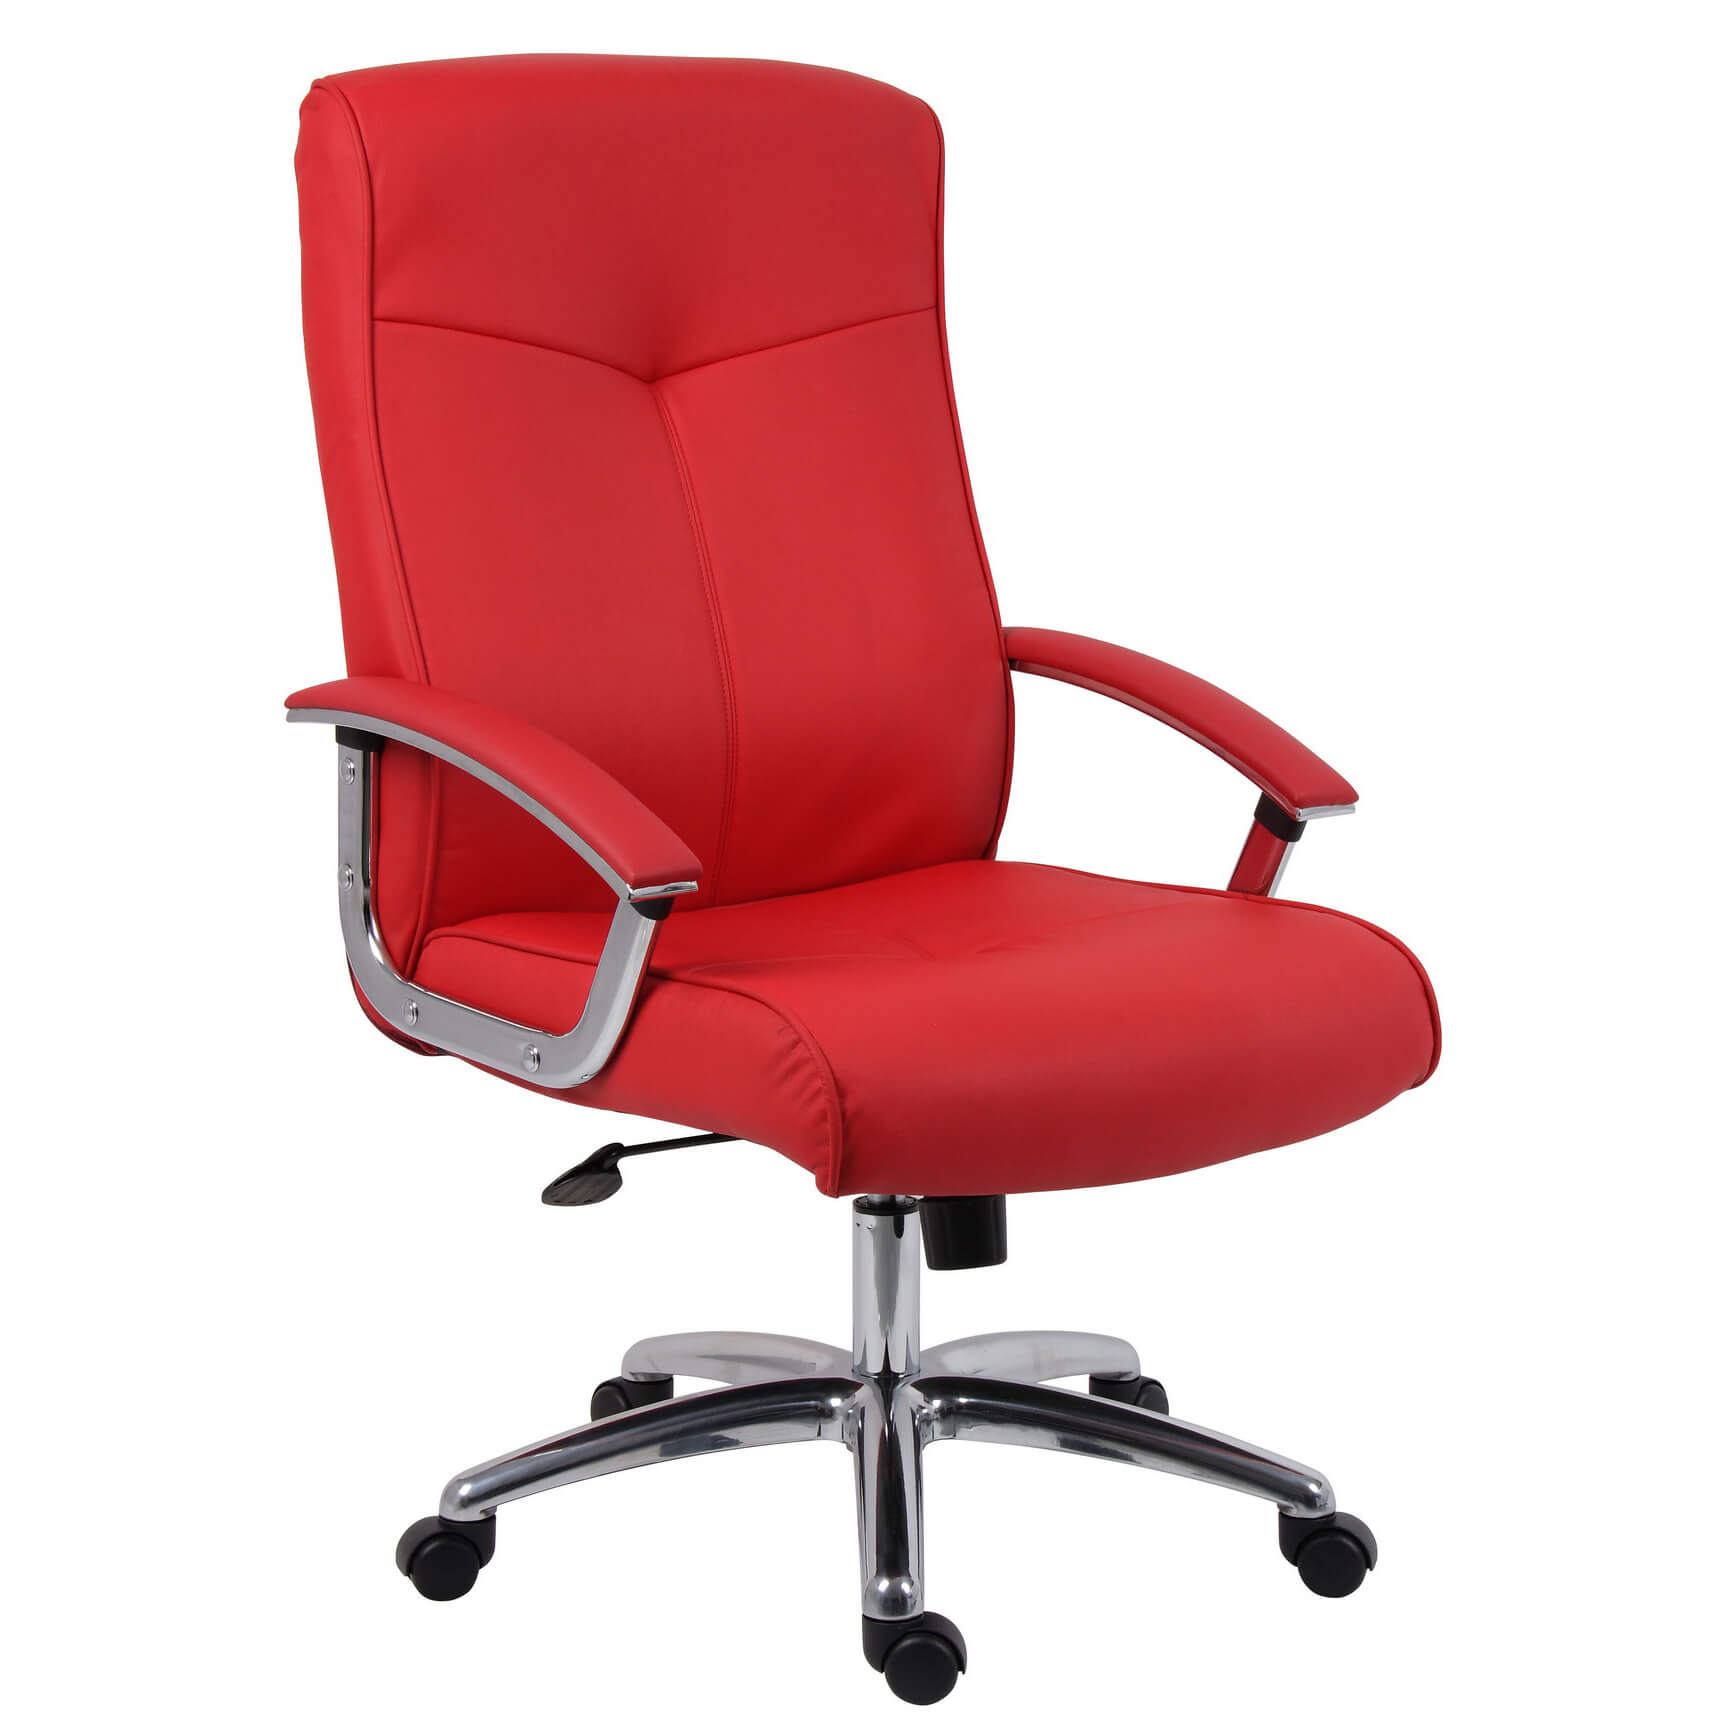 office com red armrests fabric en maui with soft pid kartell ambientedirect chair